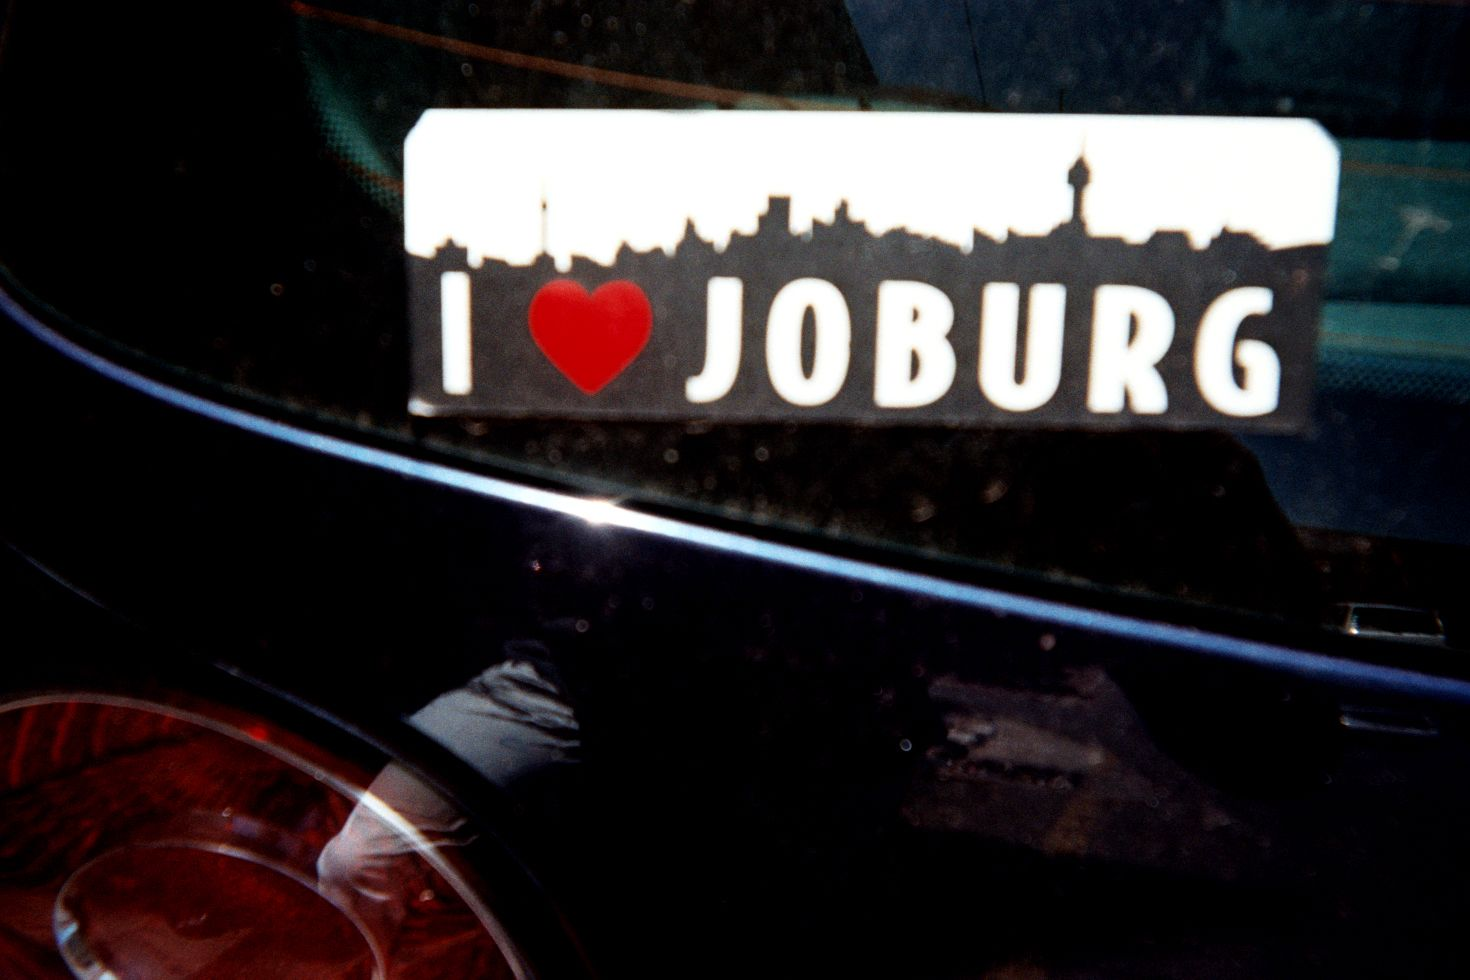 I love joburg skyline bumper sticker with a camera reflection